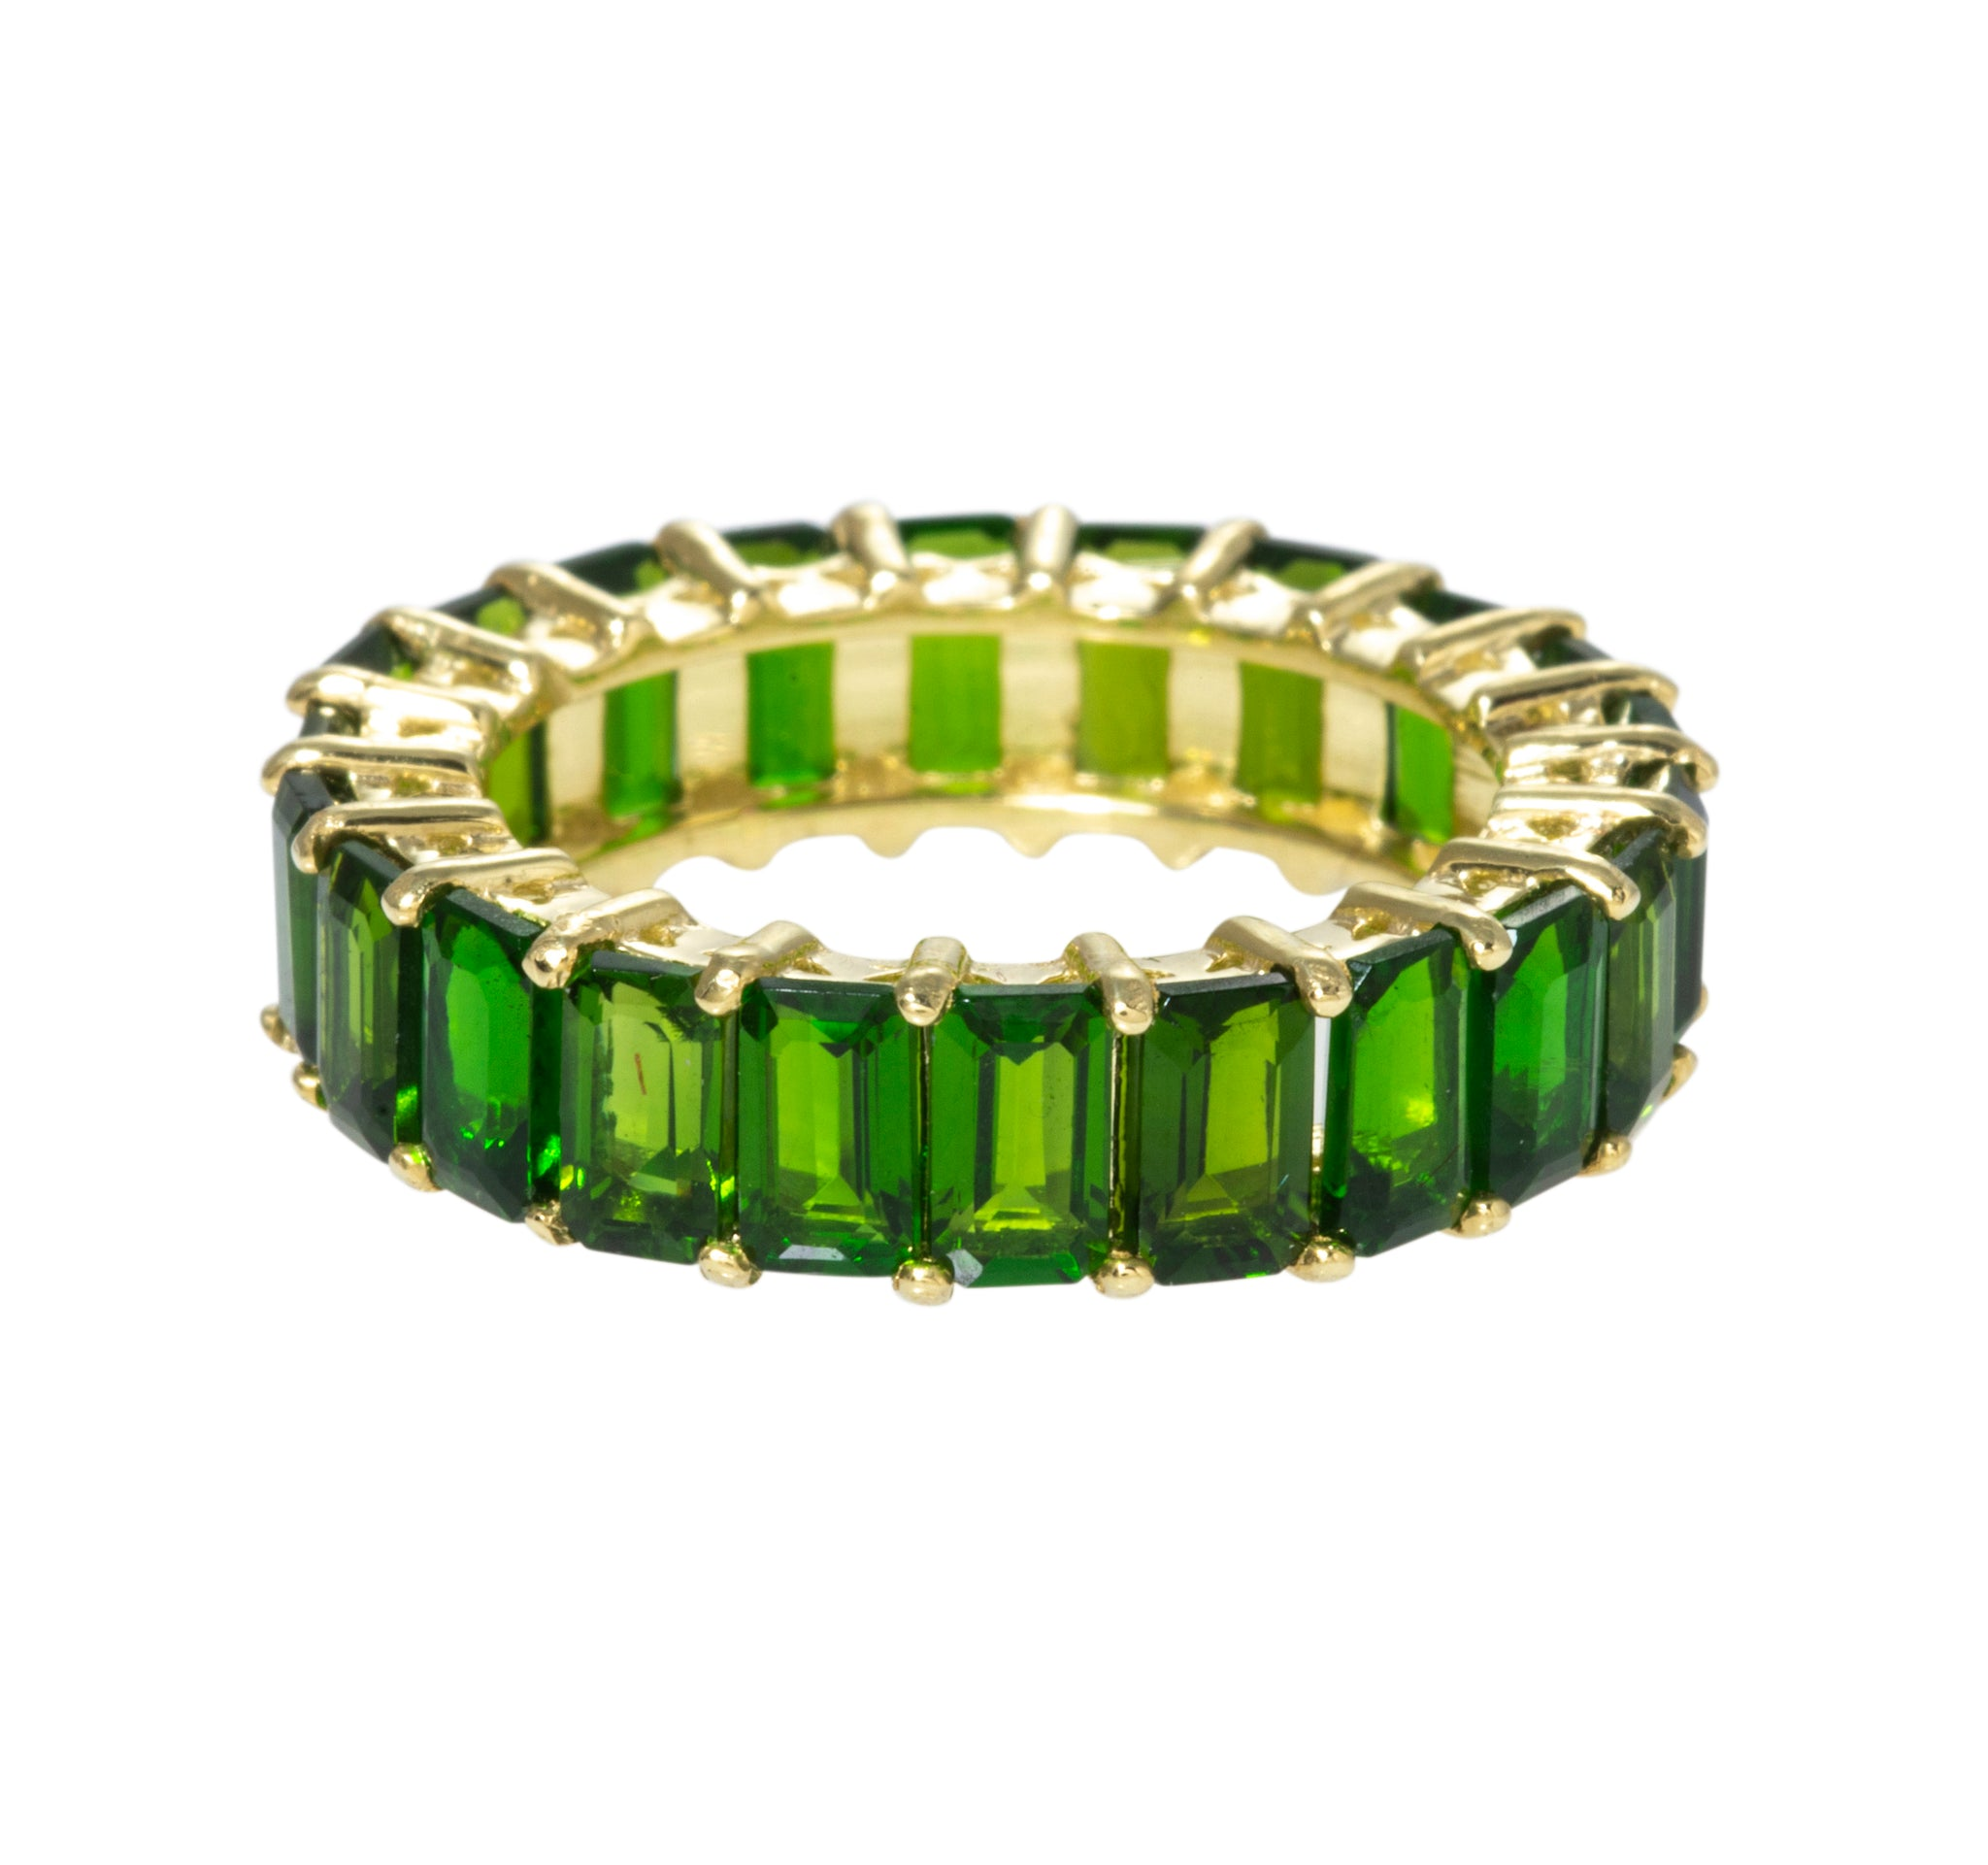 Emerald-Cut Chrome Diopside 14K Gold Eternity Band